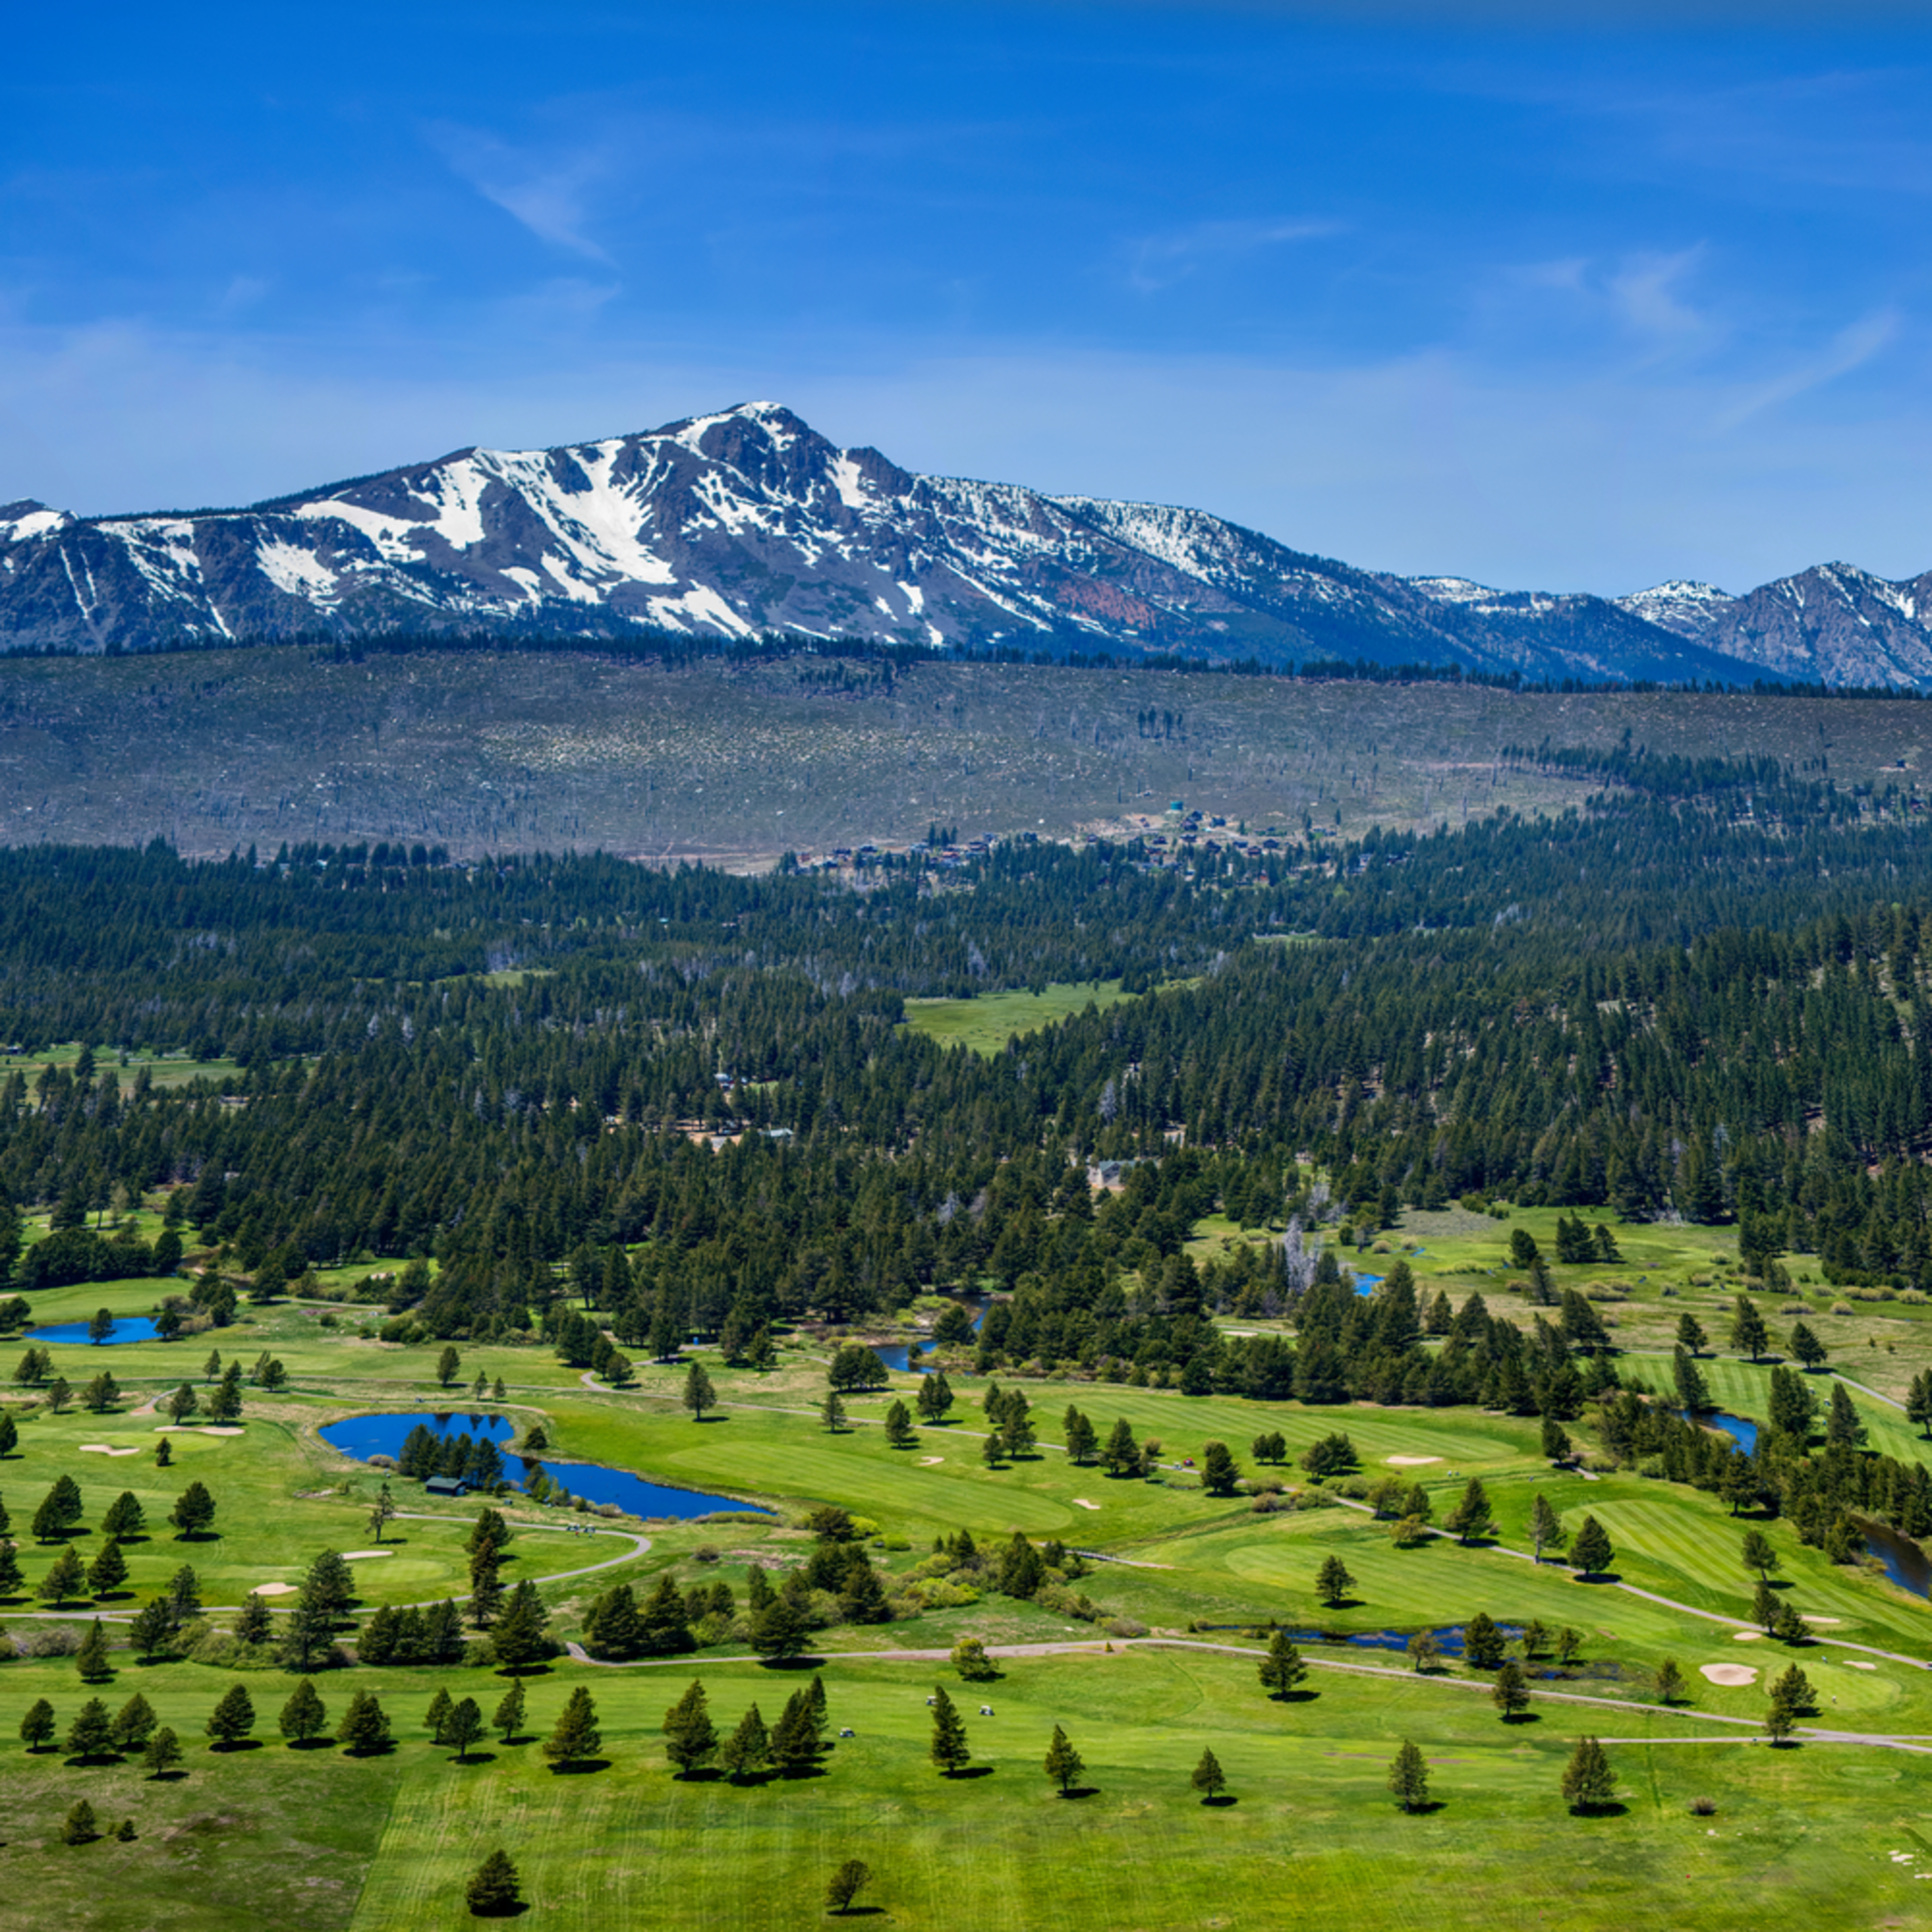 Lake tahoe golf course pano with tallac gbode5